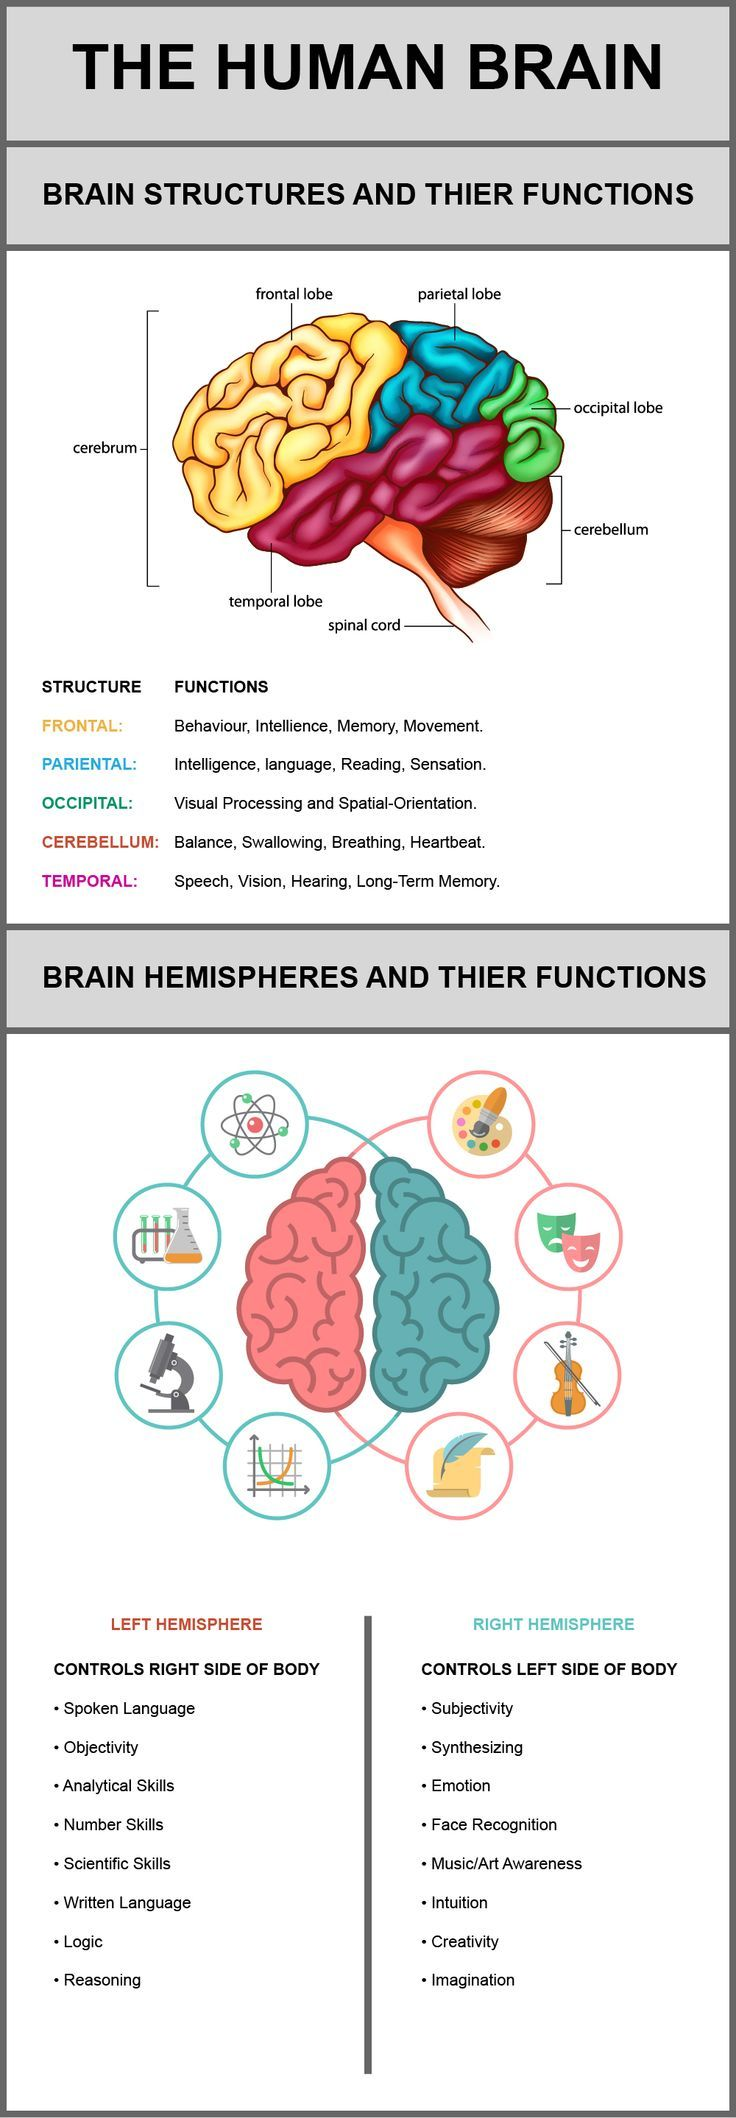 This infographic discusses each of the following structures of the brain and their functions: Frontal Lobe, Parietal Lobe, Occipital Lobe, Cerebellum and Temporal Lobe. It also discusses the right and left hemispheres of the brain and what they are responsible for controlling.